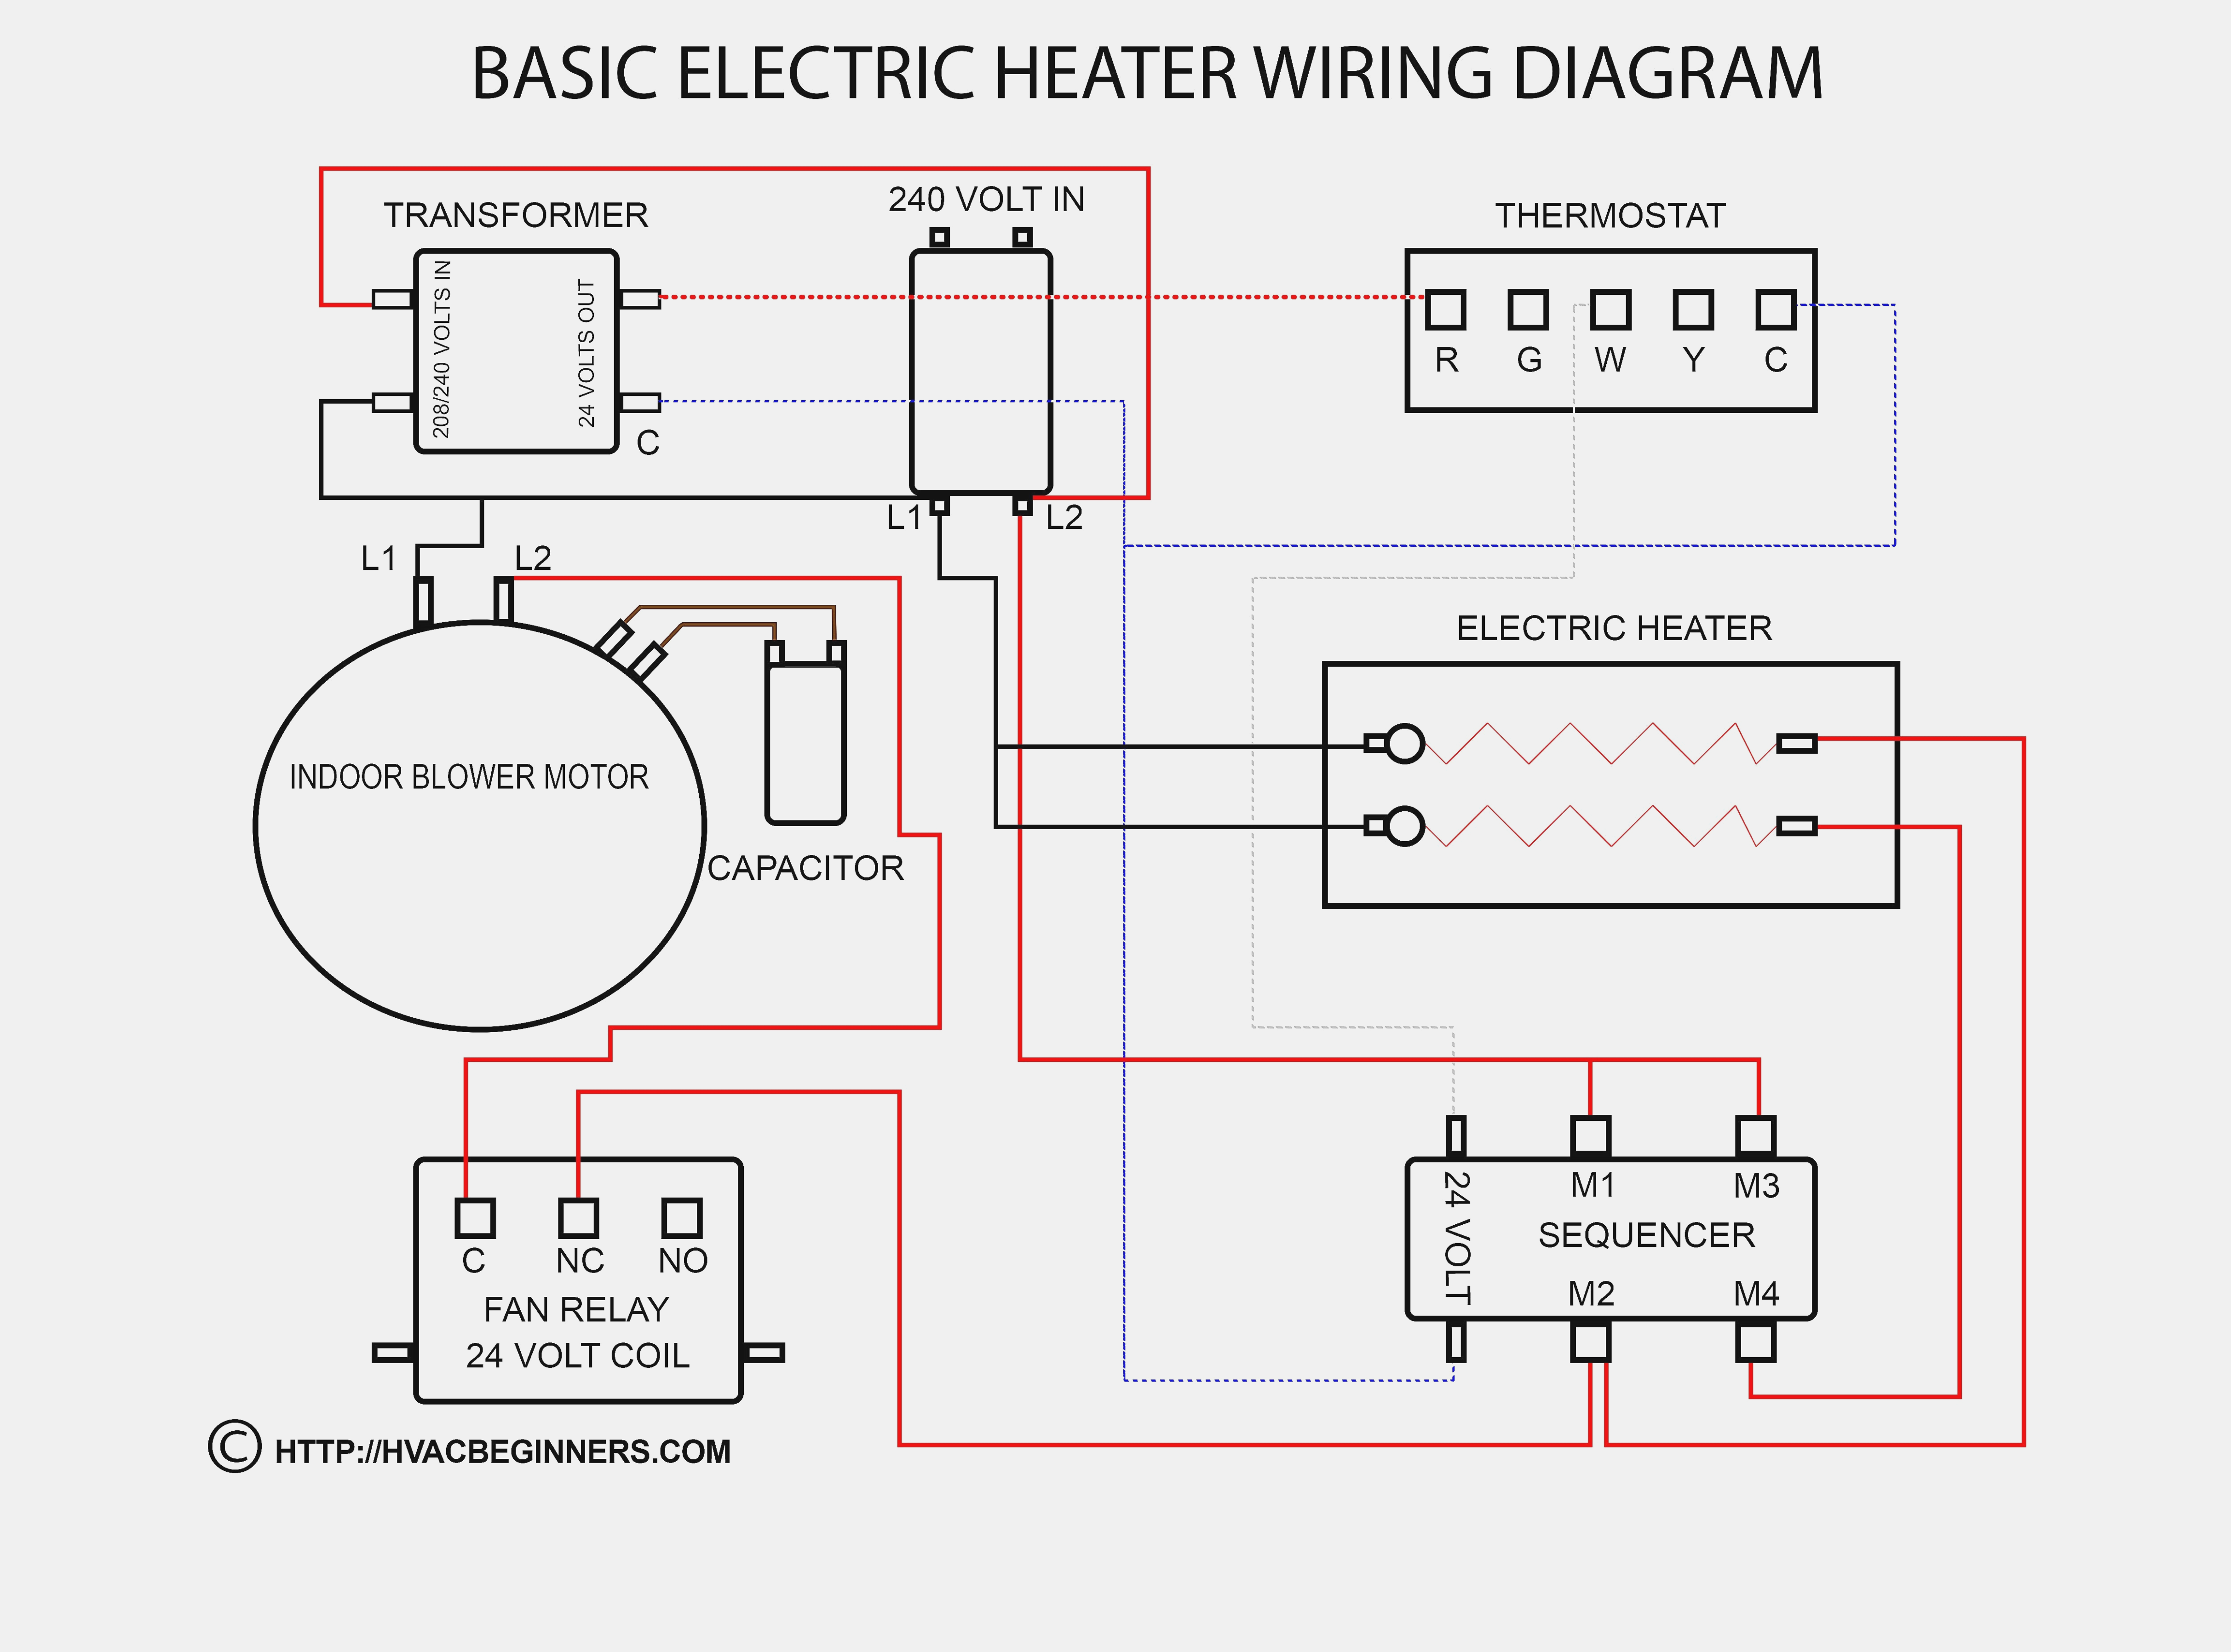 New Wiring Diagram For Home Water Heater Diagram Diagramsample Diagramtemplate Wiring Electrical Circuit Diagram Basic Electrical Wiring Electrical Diagram